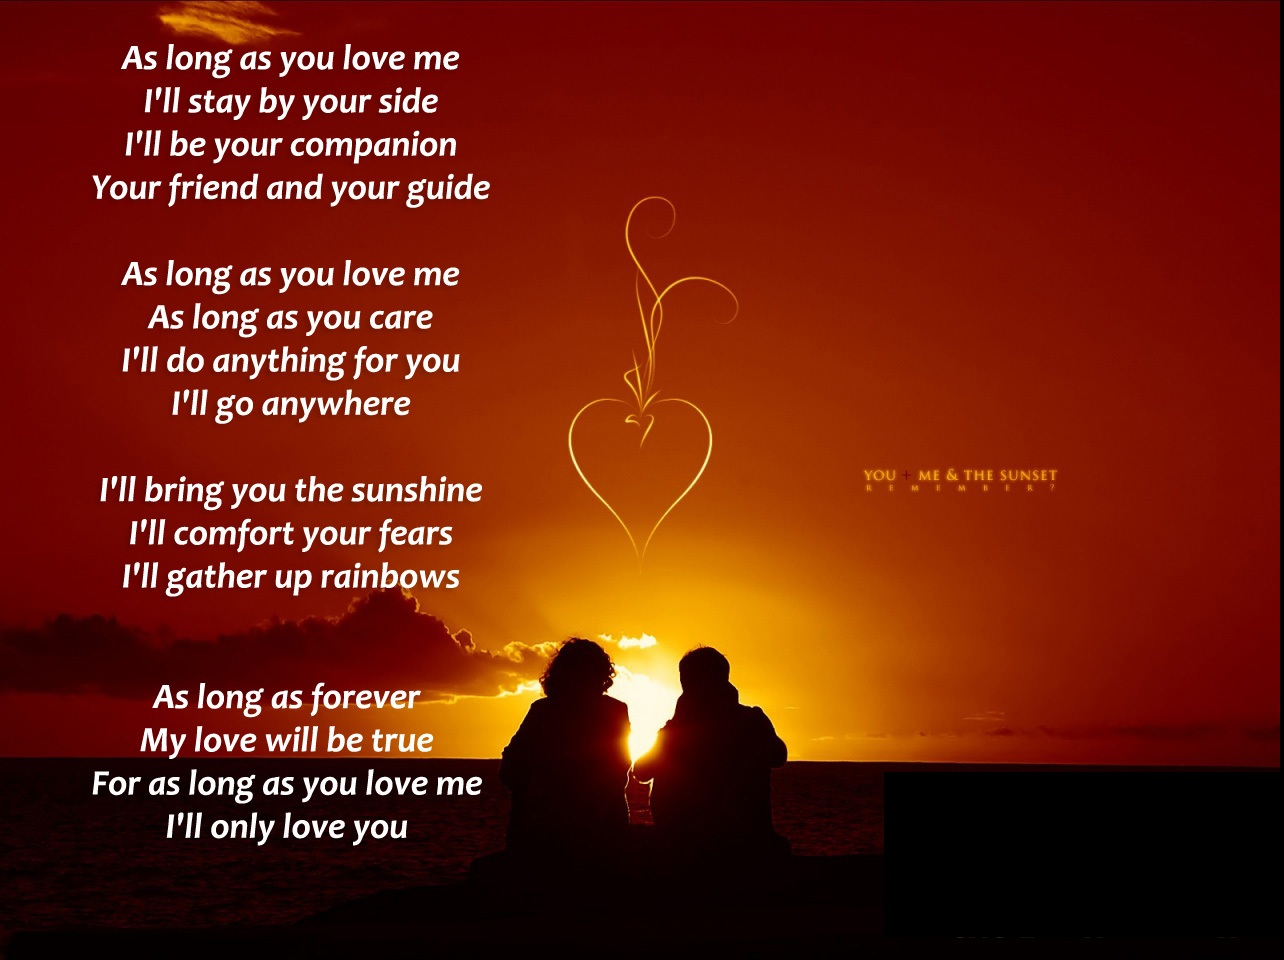 Free Love Poems And Quotes Cool Love Poems Poems